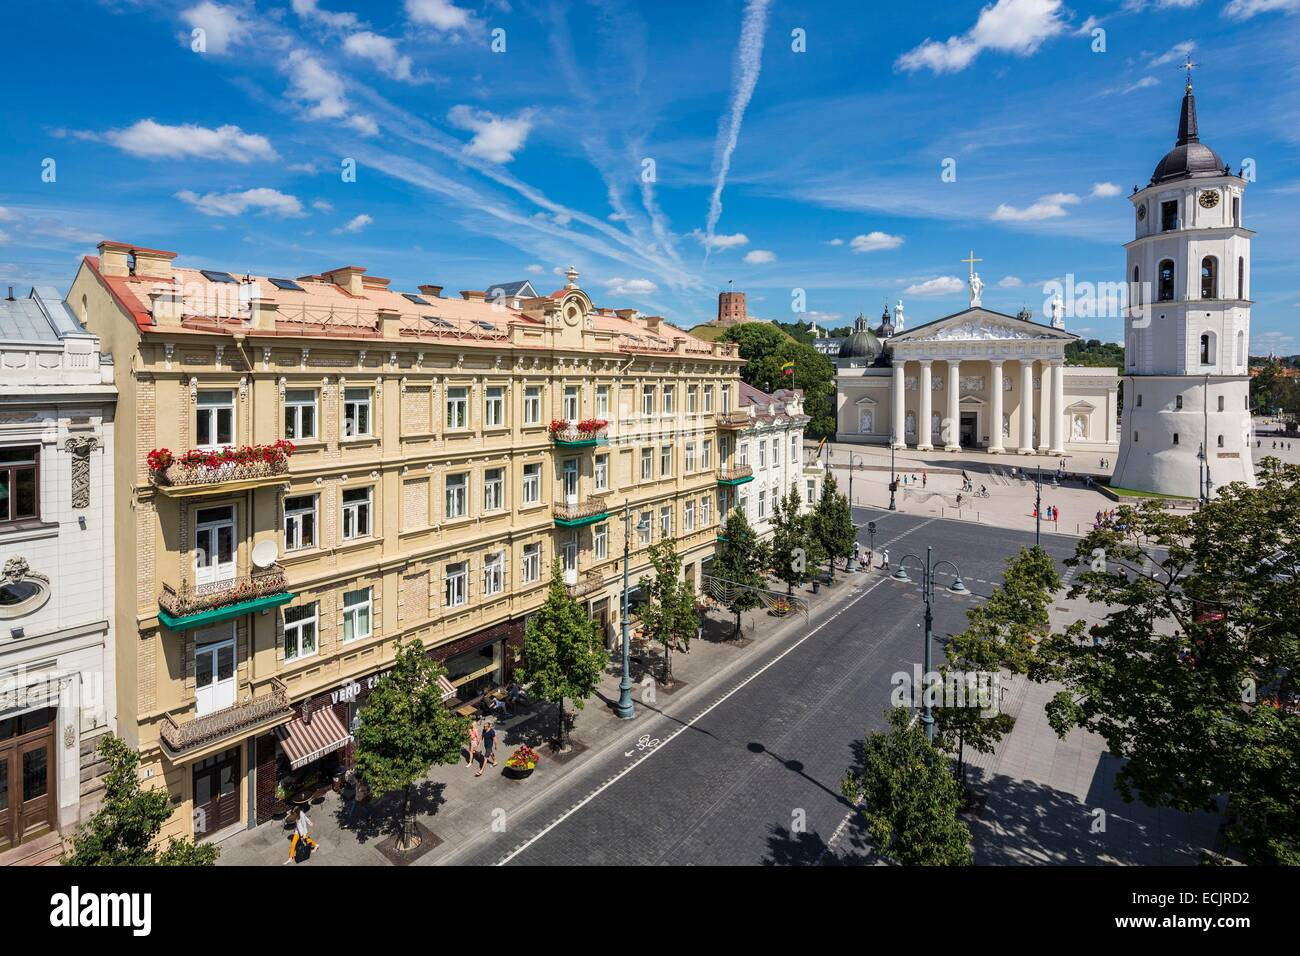 Lithuania (Baltic States), Vilnius, historical center, listed as World Heritage by UNESCO, Gedimino's avenue - Stock Image